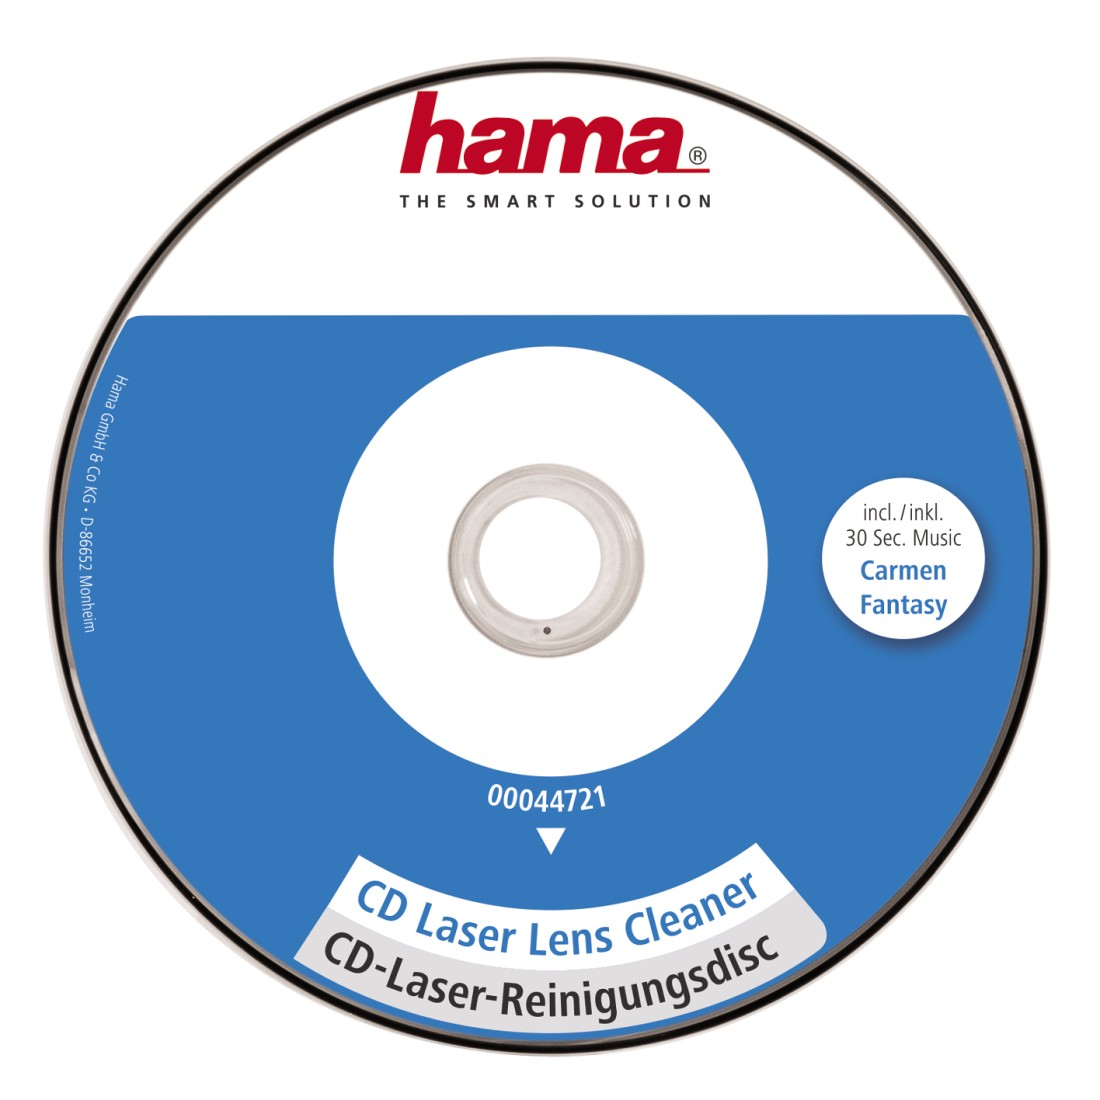 abx High-Res Image - Hama, CD Laser Lens Cleaner